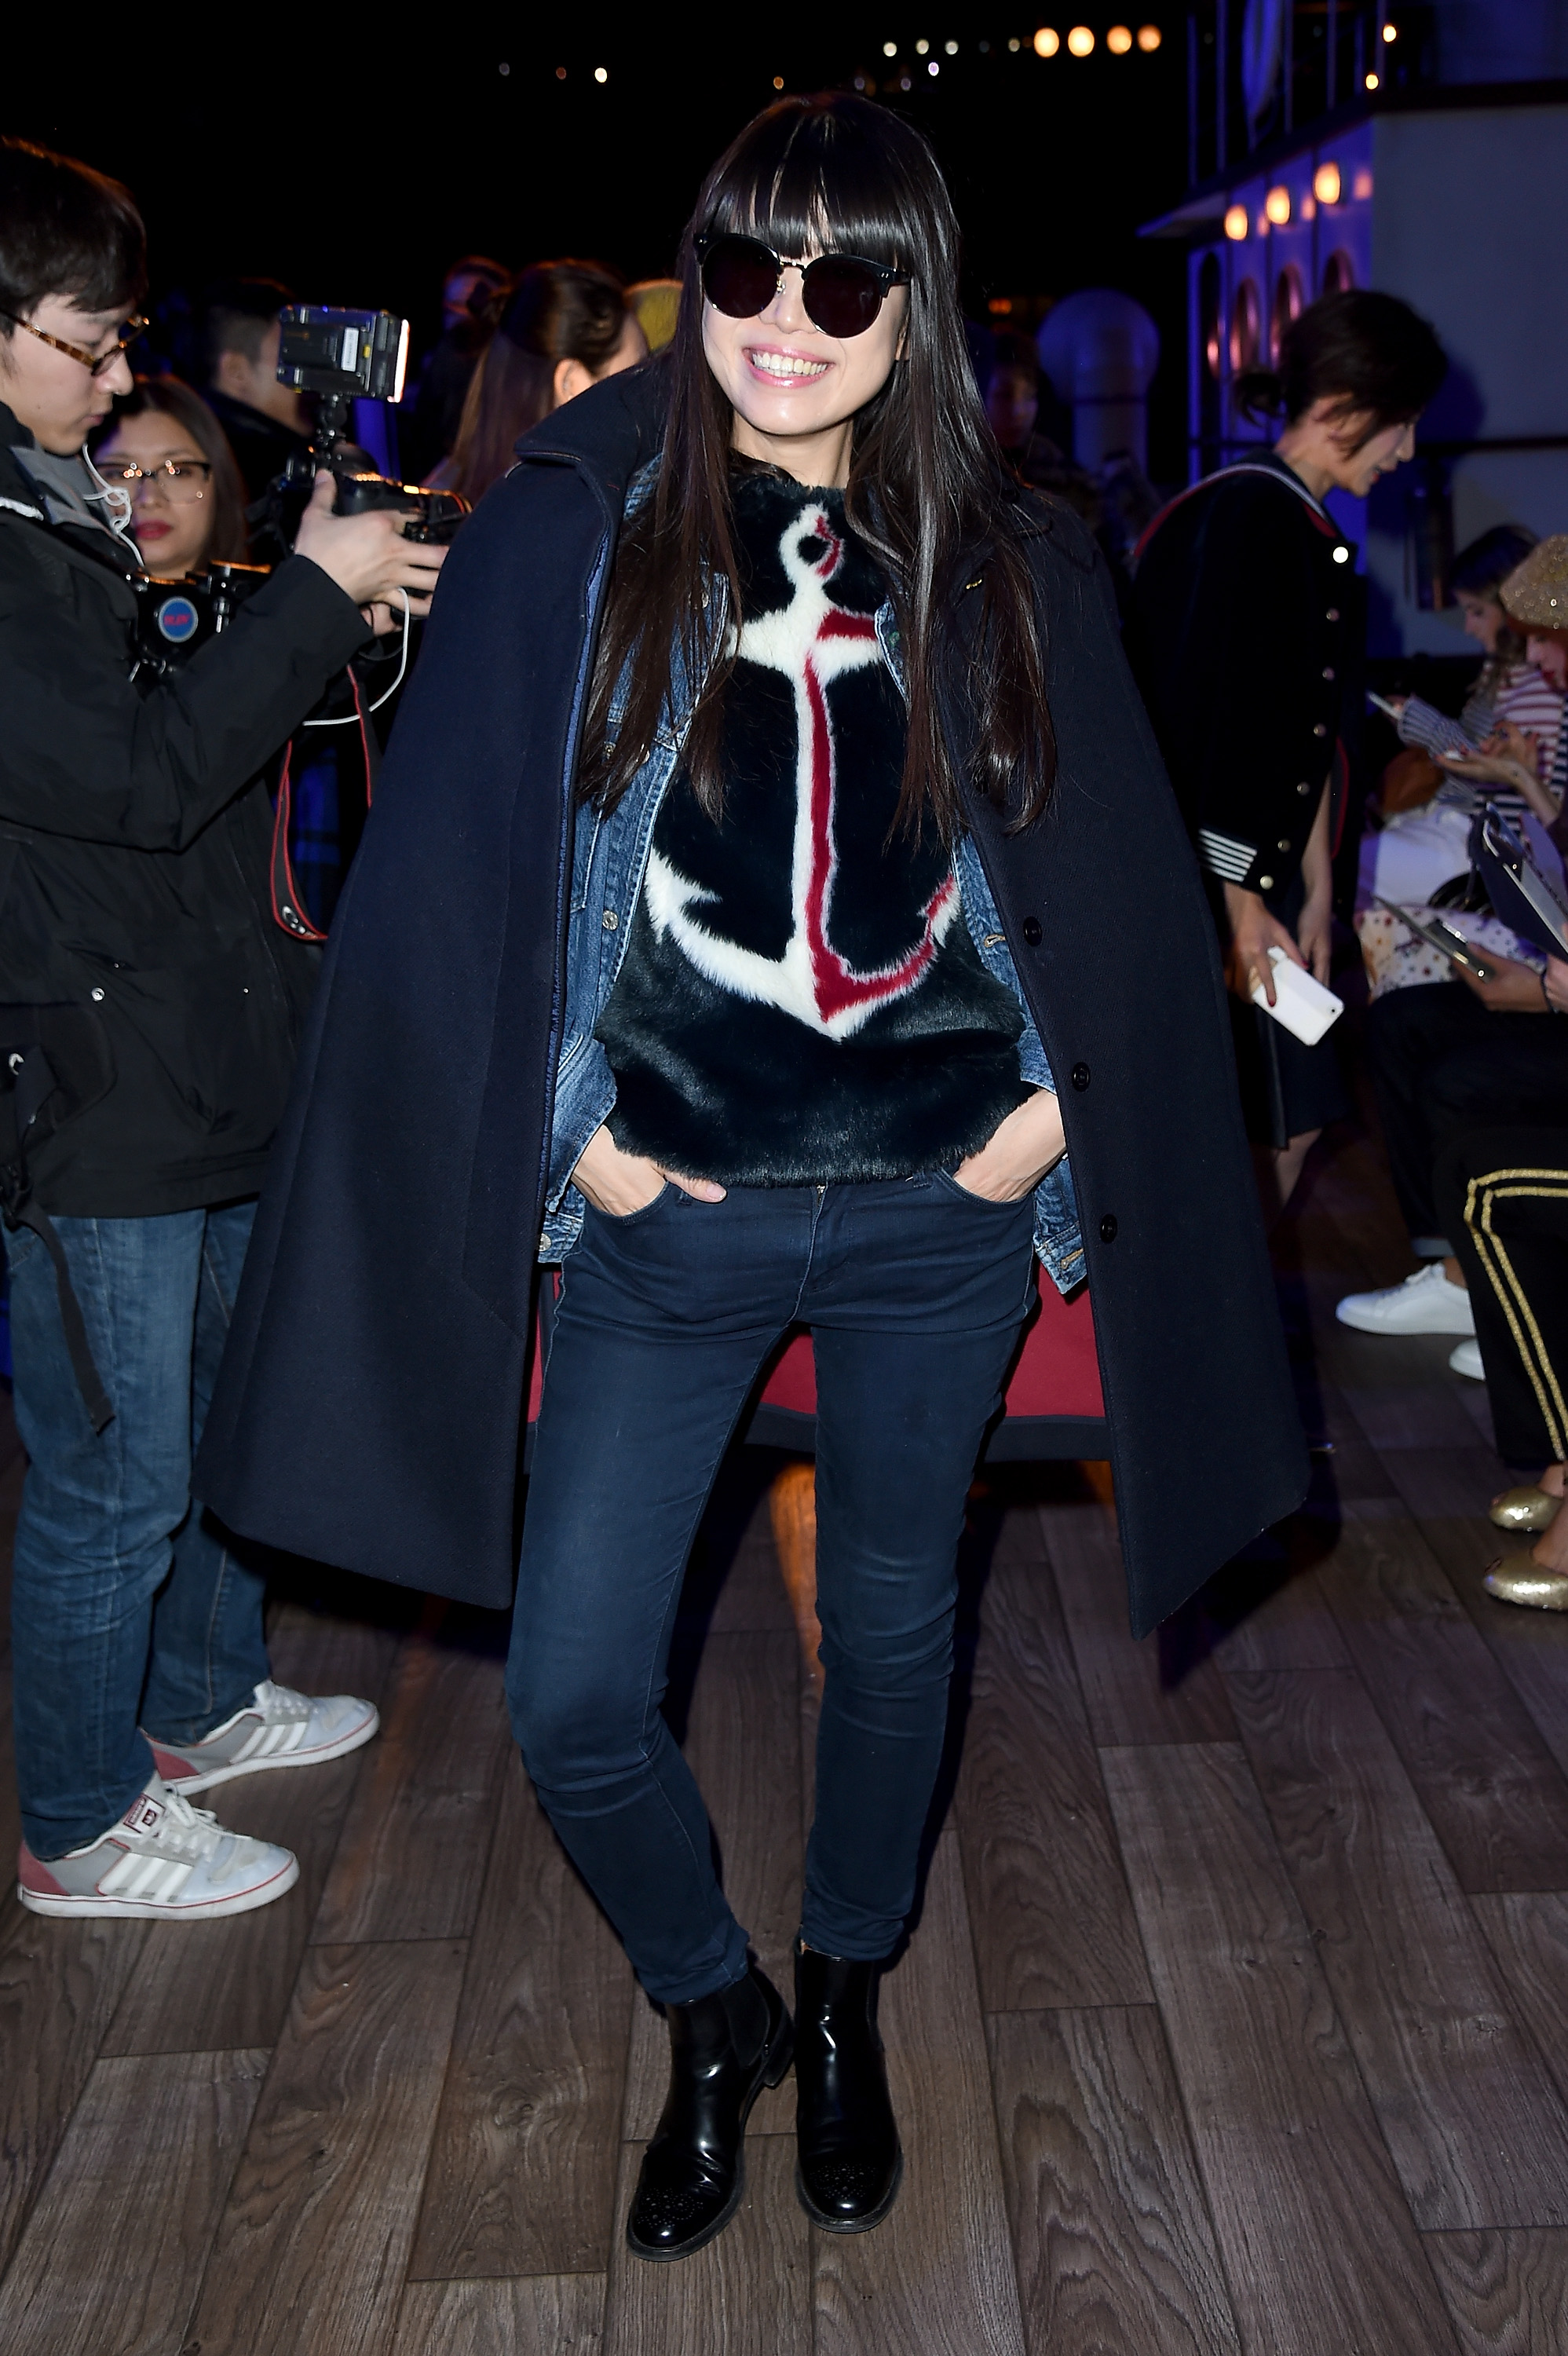 NEW YORK, NY - FEBRUARY 15: Leaf Greener attends the Tommy Hilfiger Women's Fall 2016 show durong New York Fashion Week: The Shows at Park Avenue Armory on February 15, 2016 in New York City. (Photo by Nicholas Hunt/Getty Images for Tommy Hilfiger)